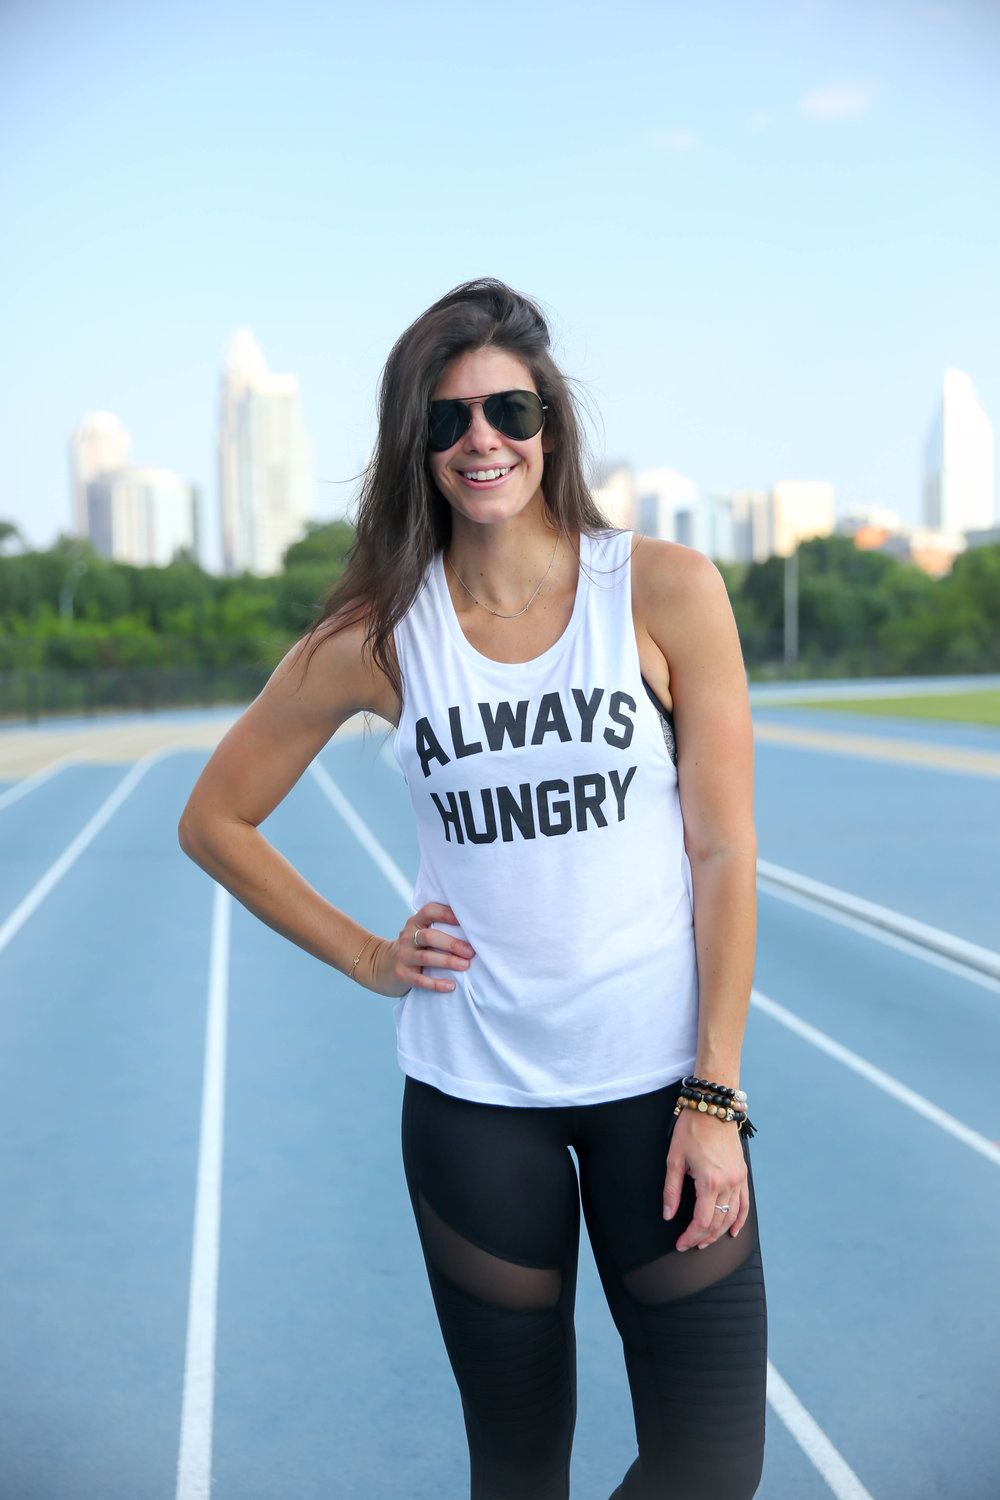 Always Hungry Tank + 3 Healthy Snacks to Keep You Fueled On-The-Go